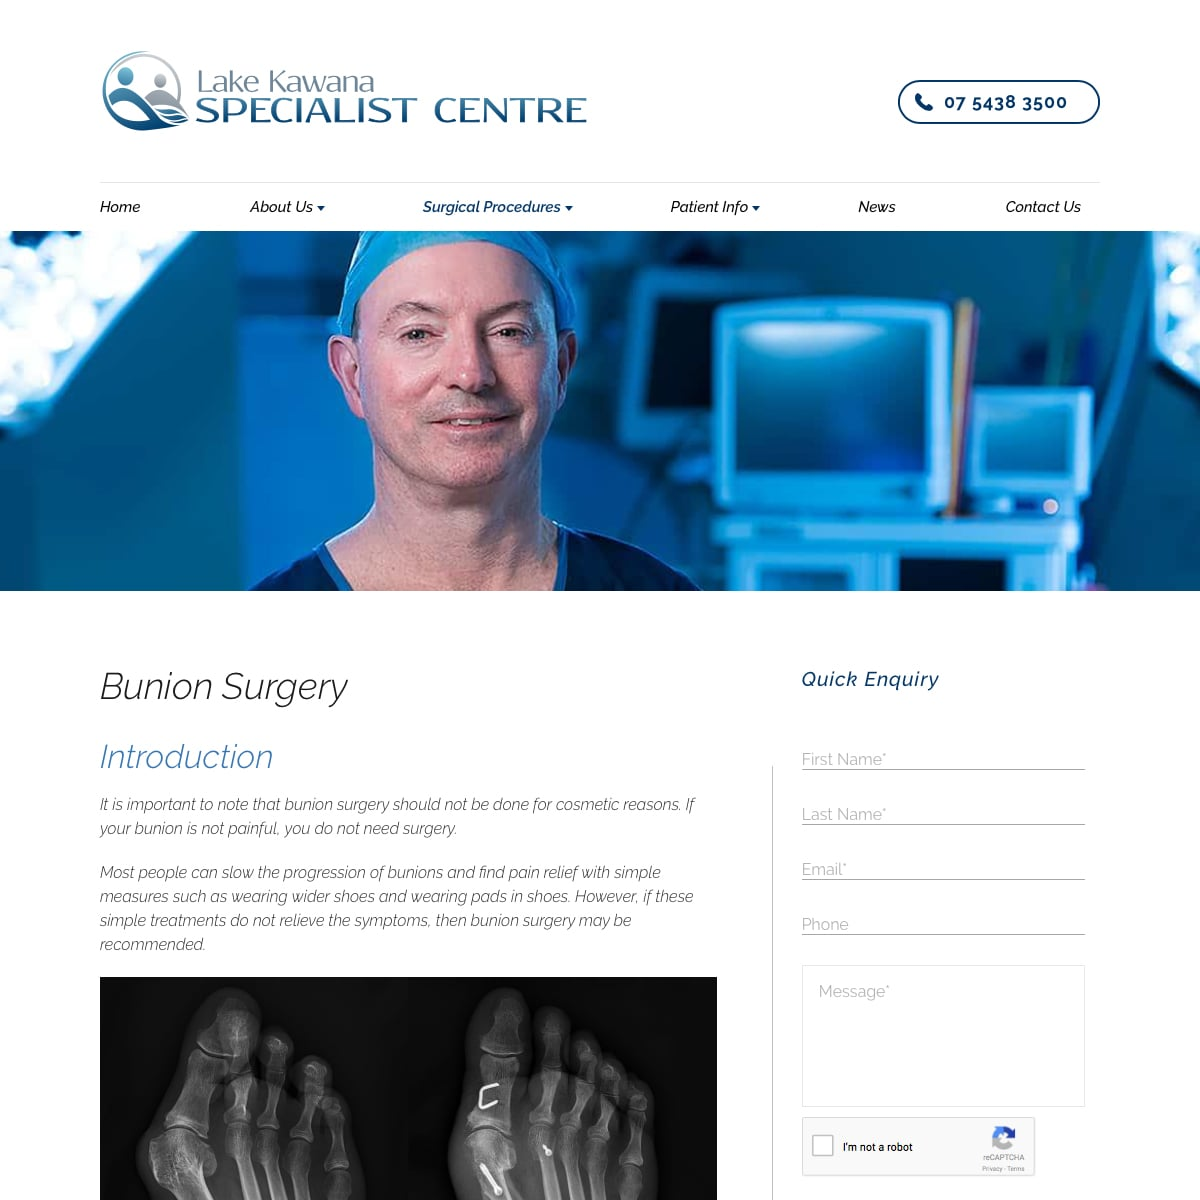 Lake Kawana Specialist Centre - Bunion Surgery